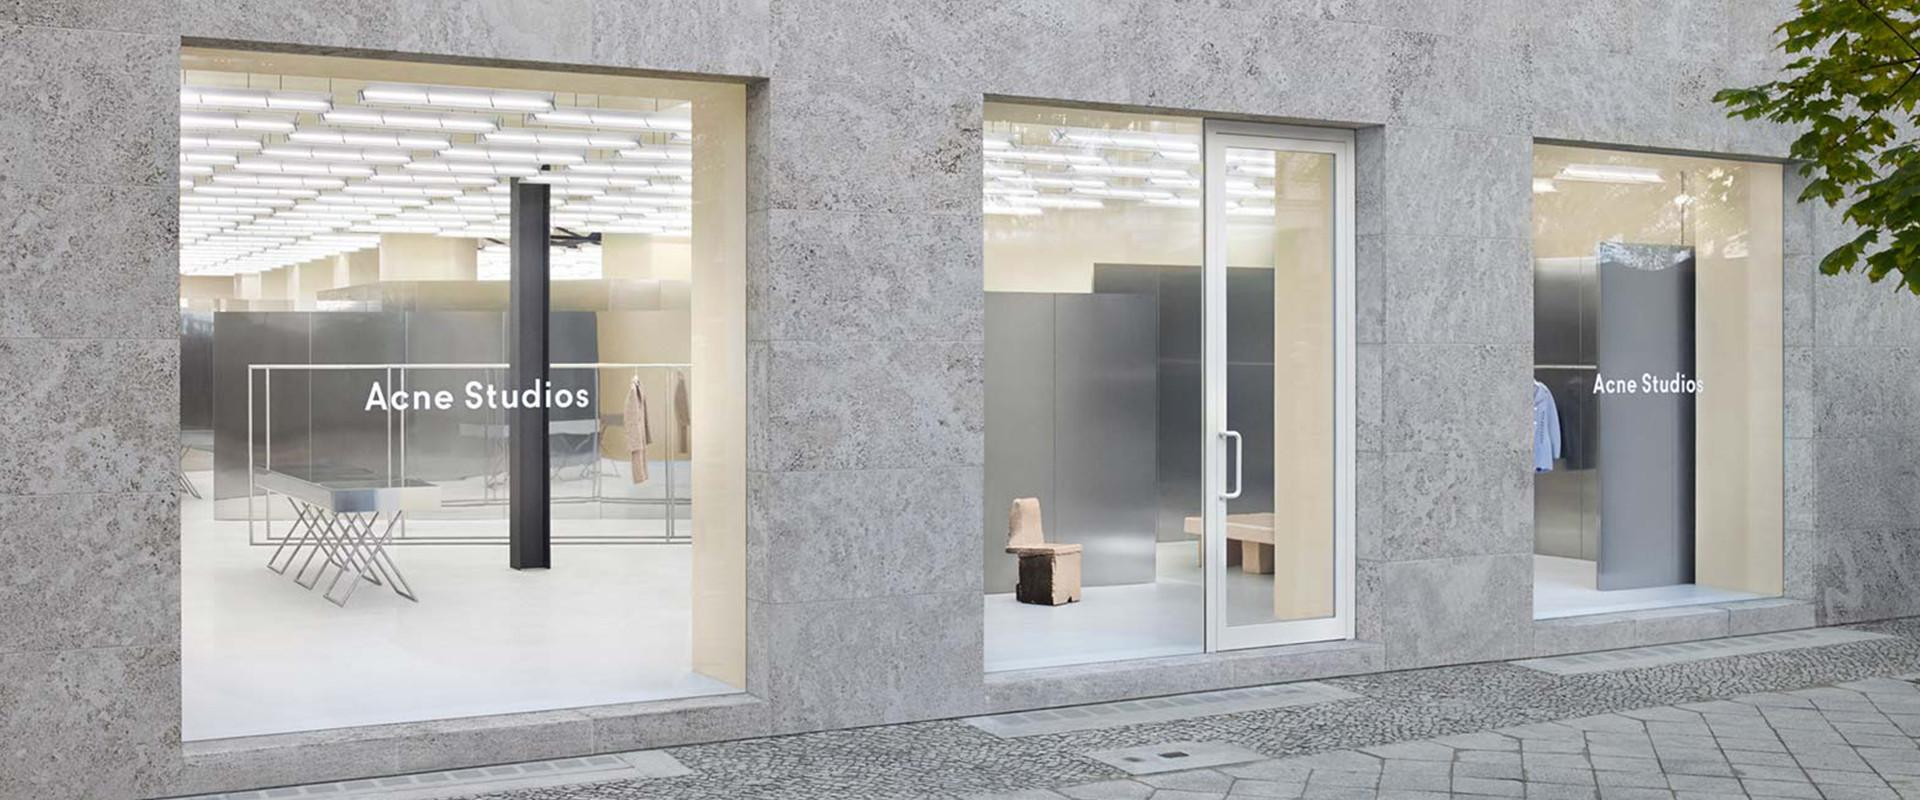 Acne Studios Berlin Interior Design Magazine